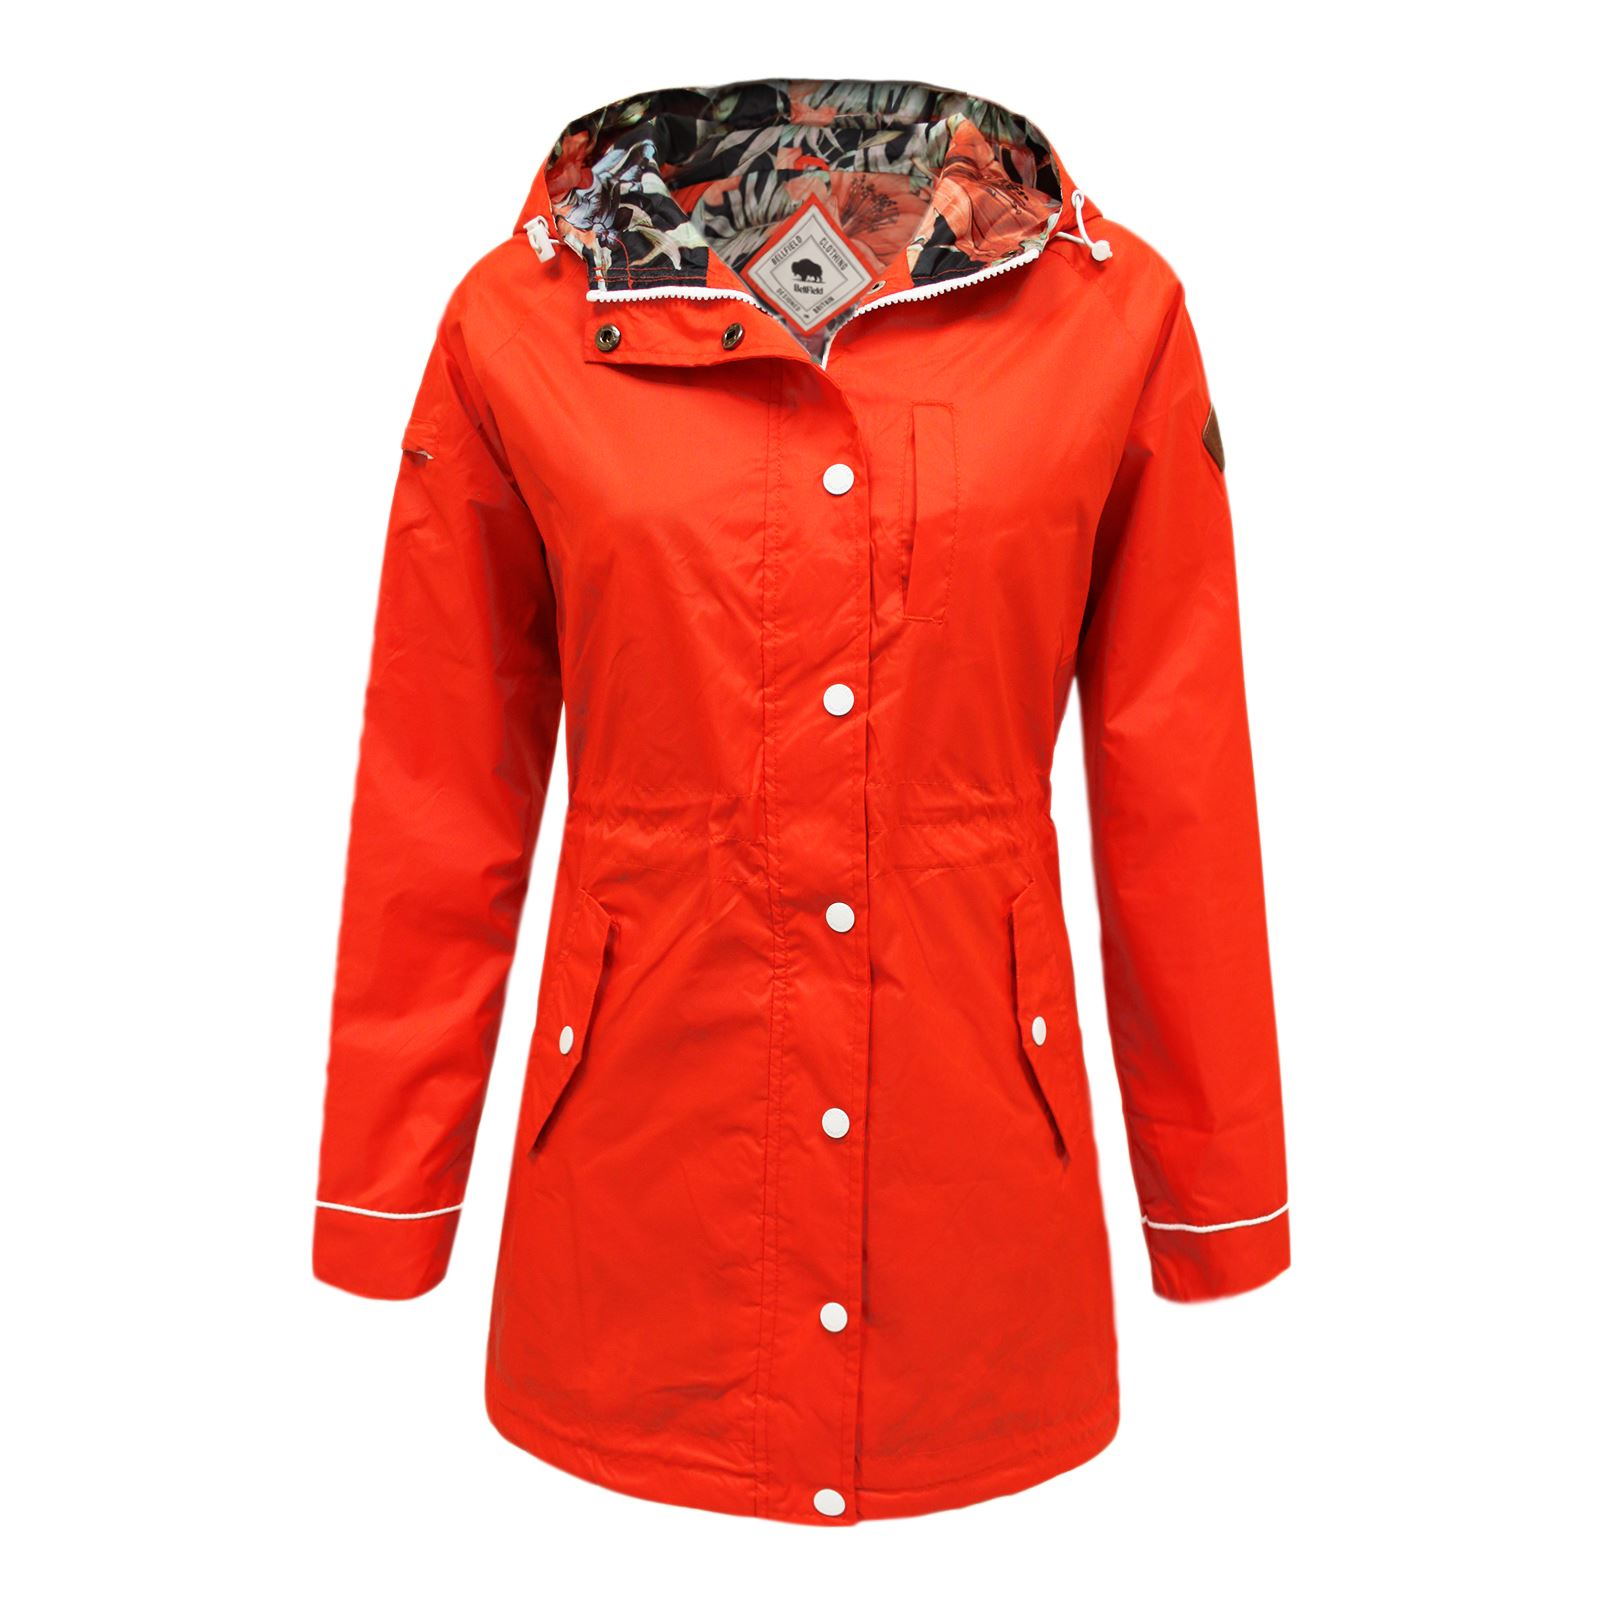 BELLFIELD WOMENS LADIES LIGHTWEIGHT WATERPROOF FESTIVAL RAINCOAT ...